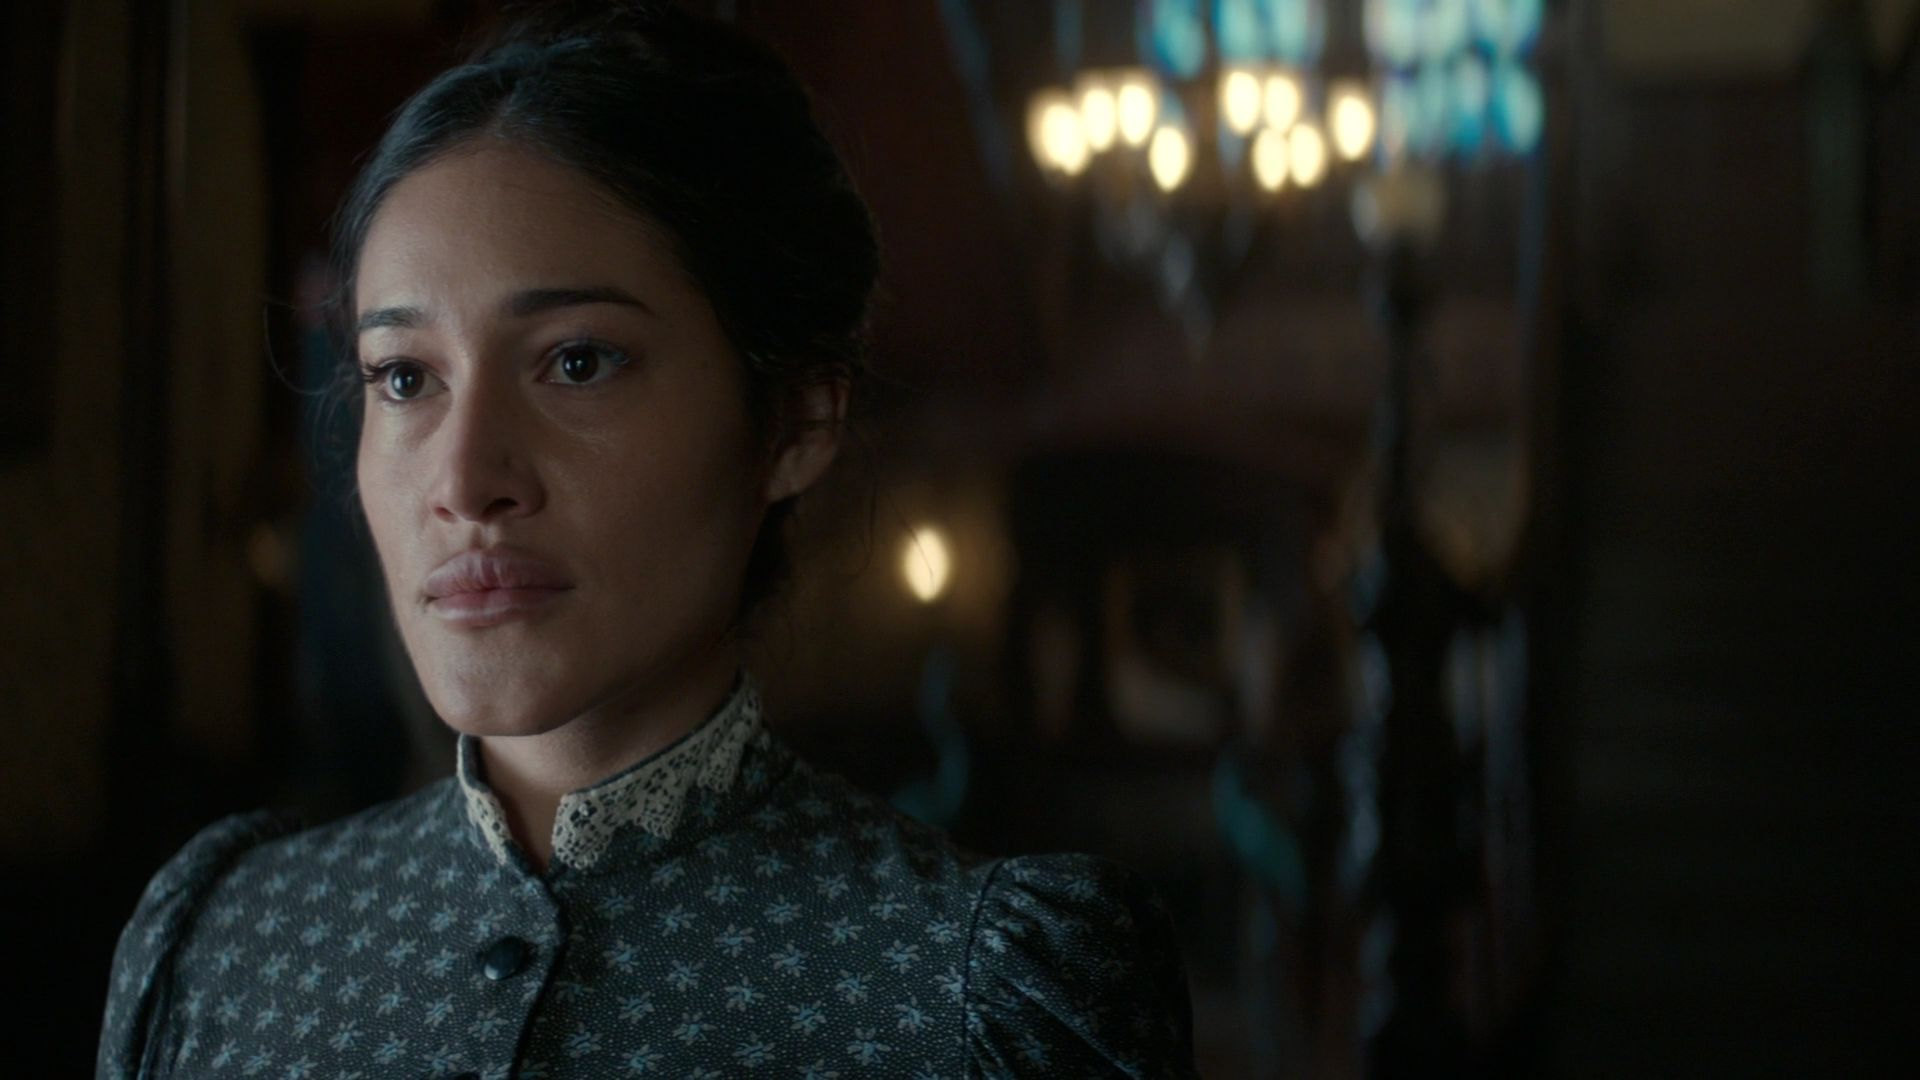 Q'orianka Kilcher stars as Mary Palmer in season one of TNT and Netflix's period drama  The Alienist. That is, until the show's writers up and fridge her. Fuckers.